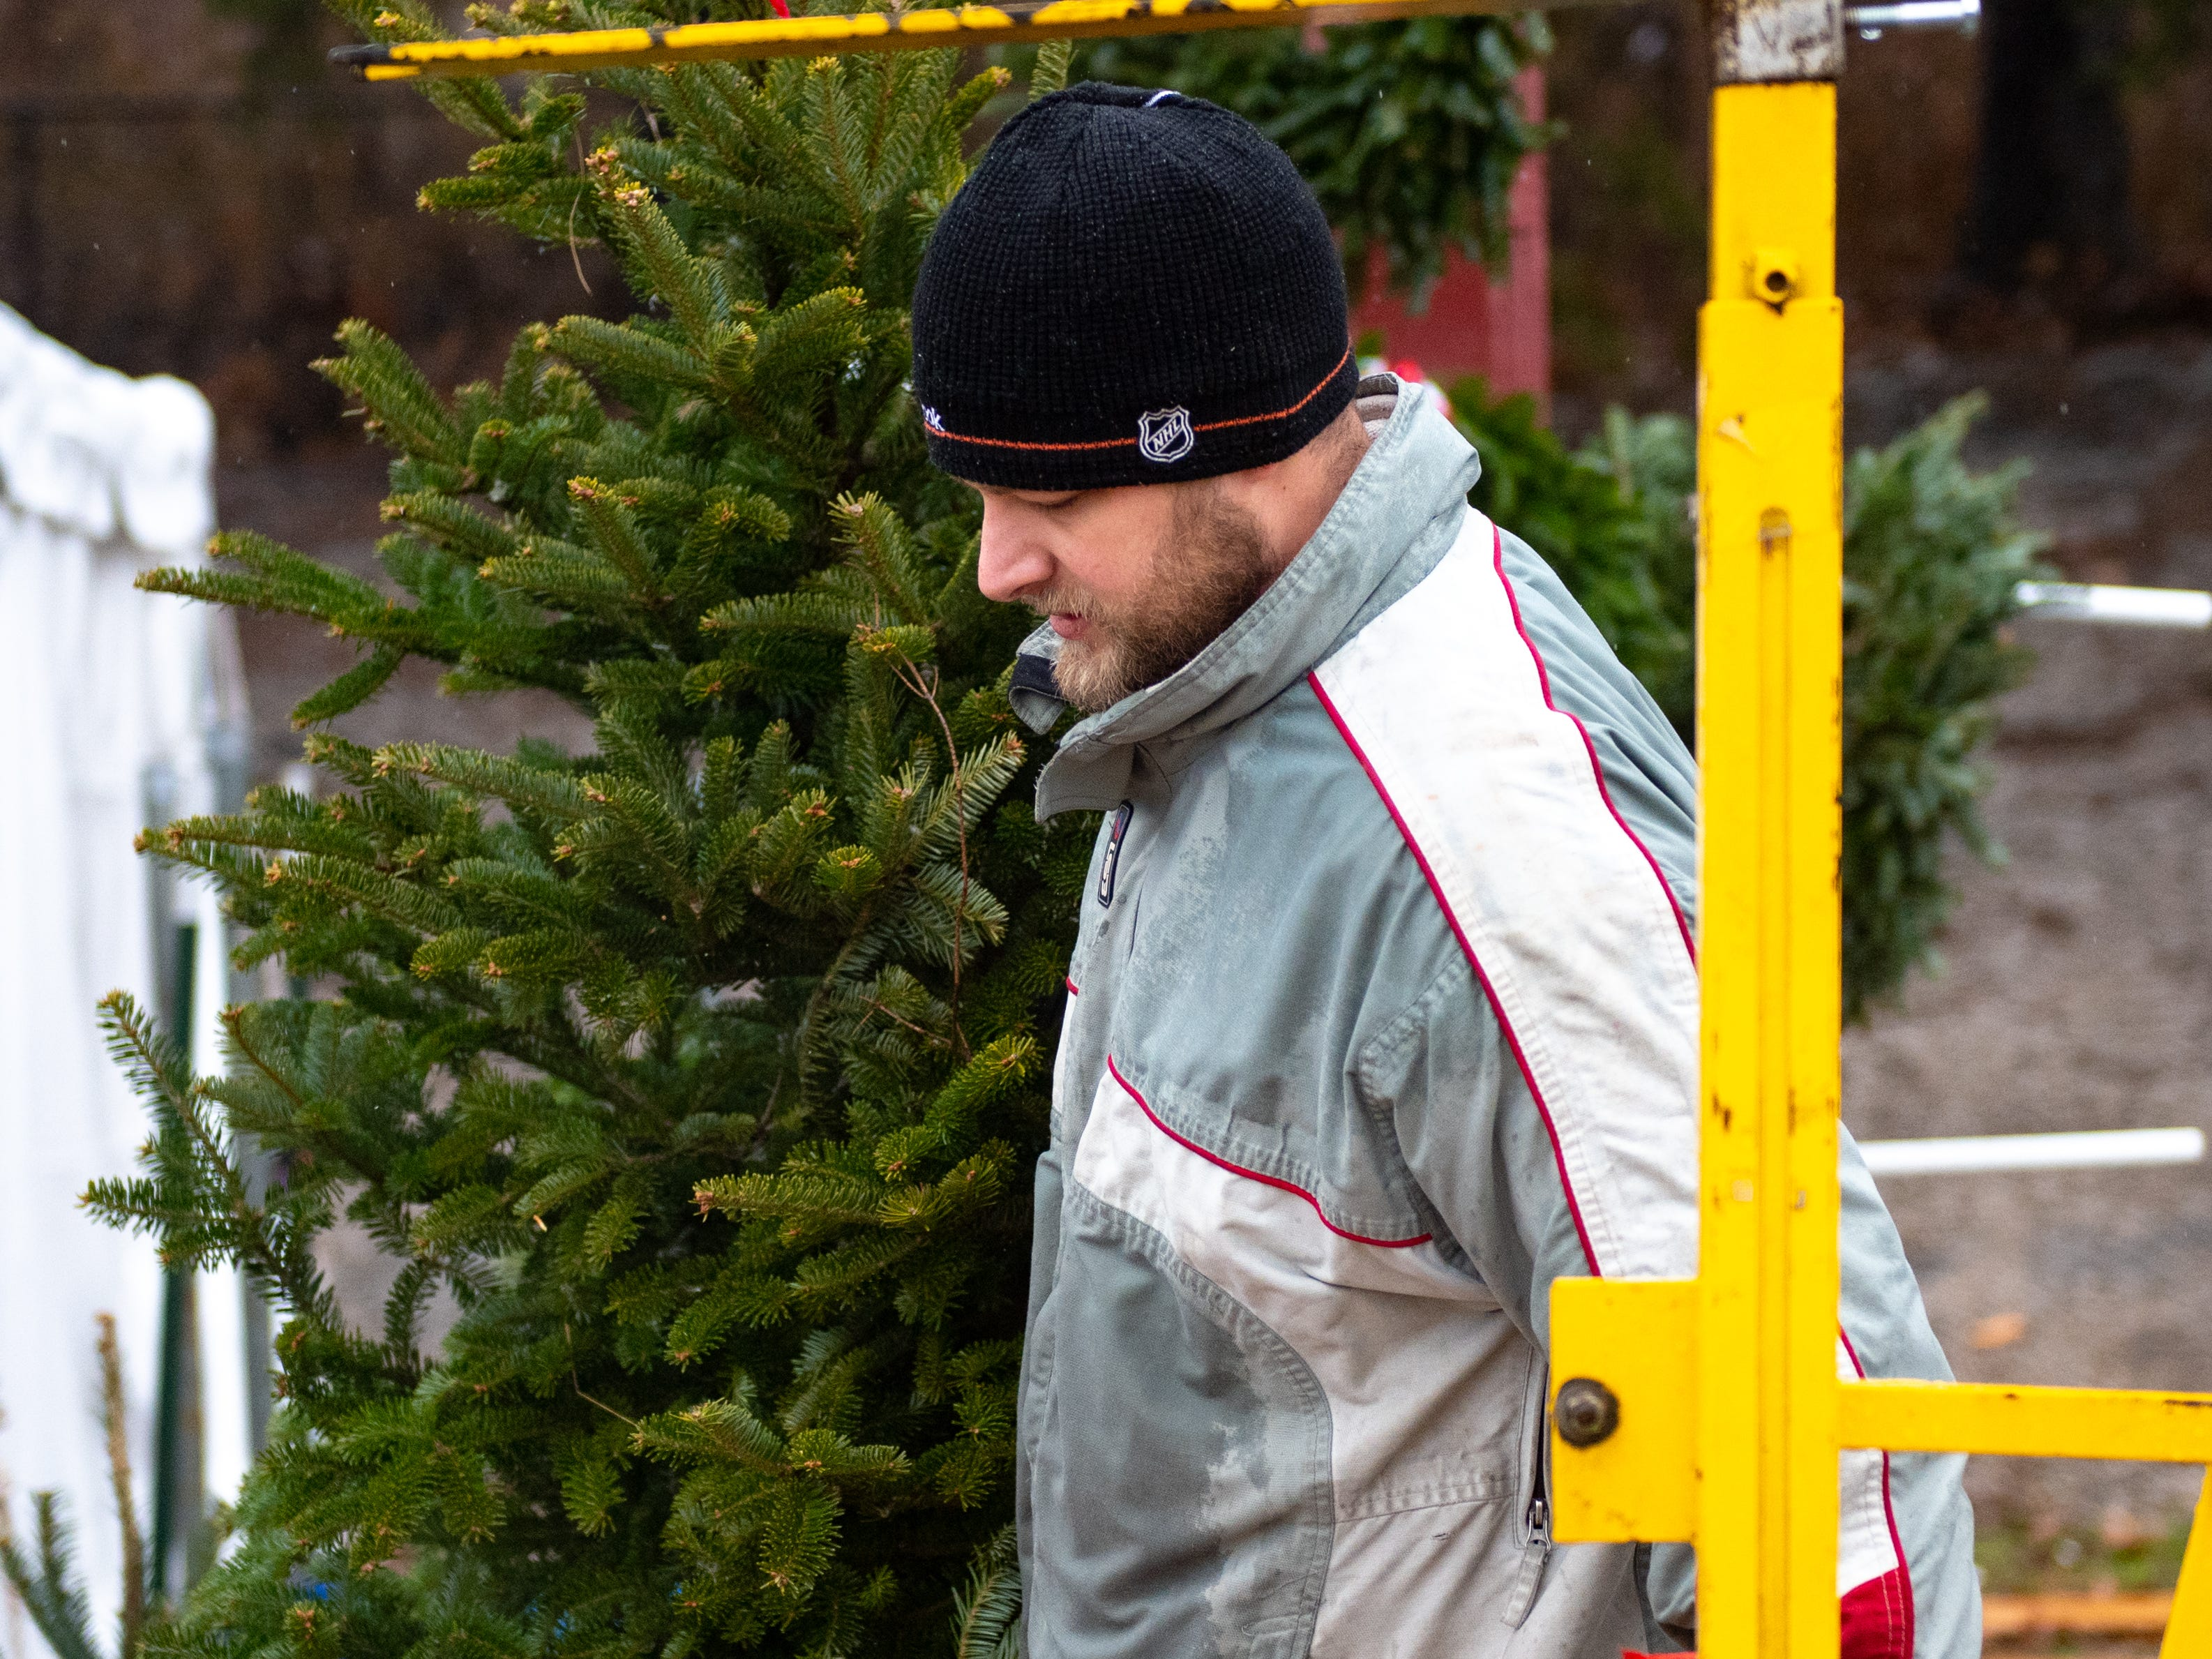 After a hole has been drilled at the bottom of a tree, volunteer Cody Miller prepares to wrap it up, Saturday, December 15, 2018.